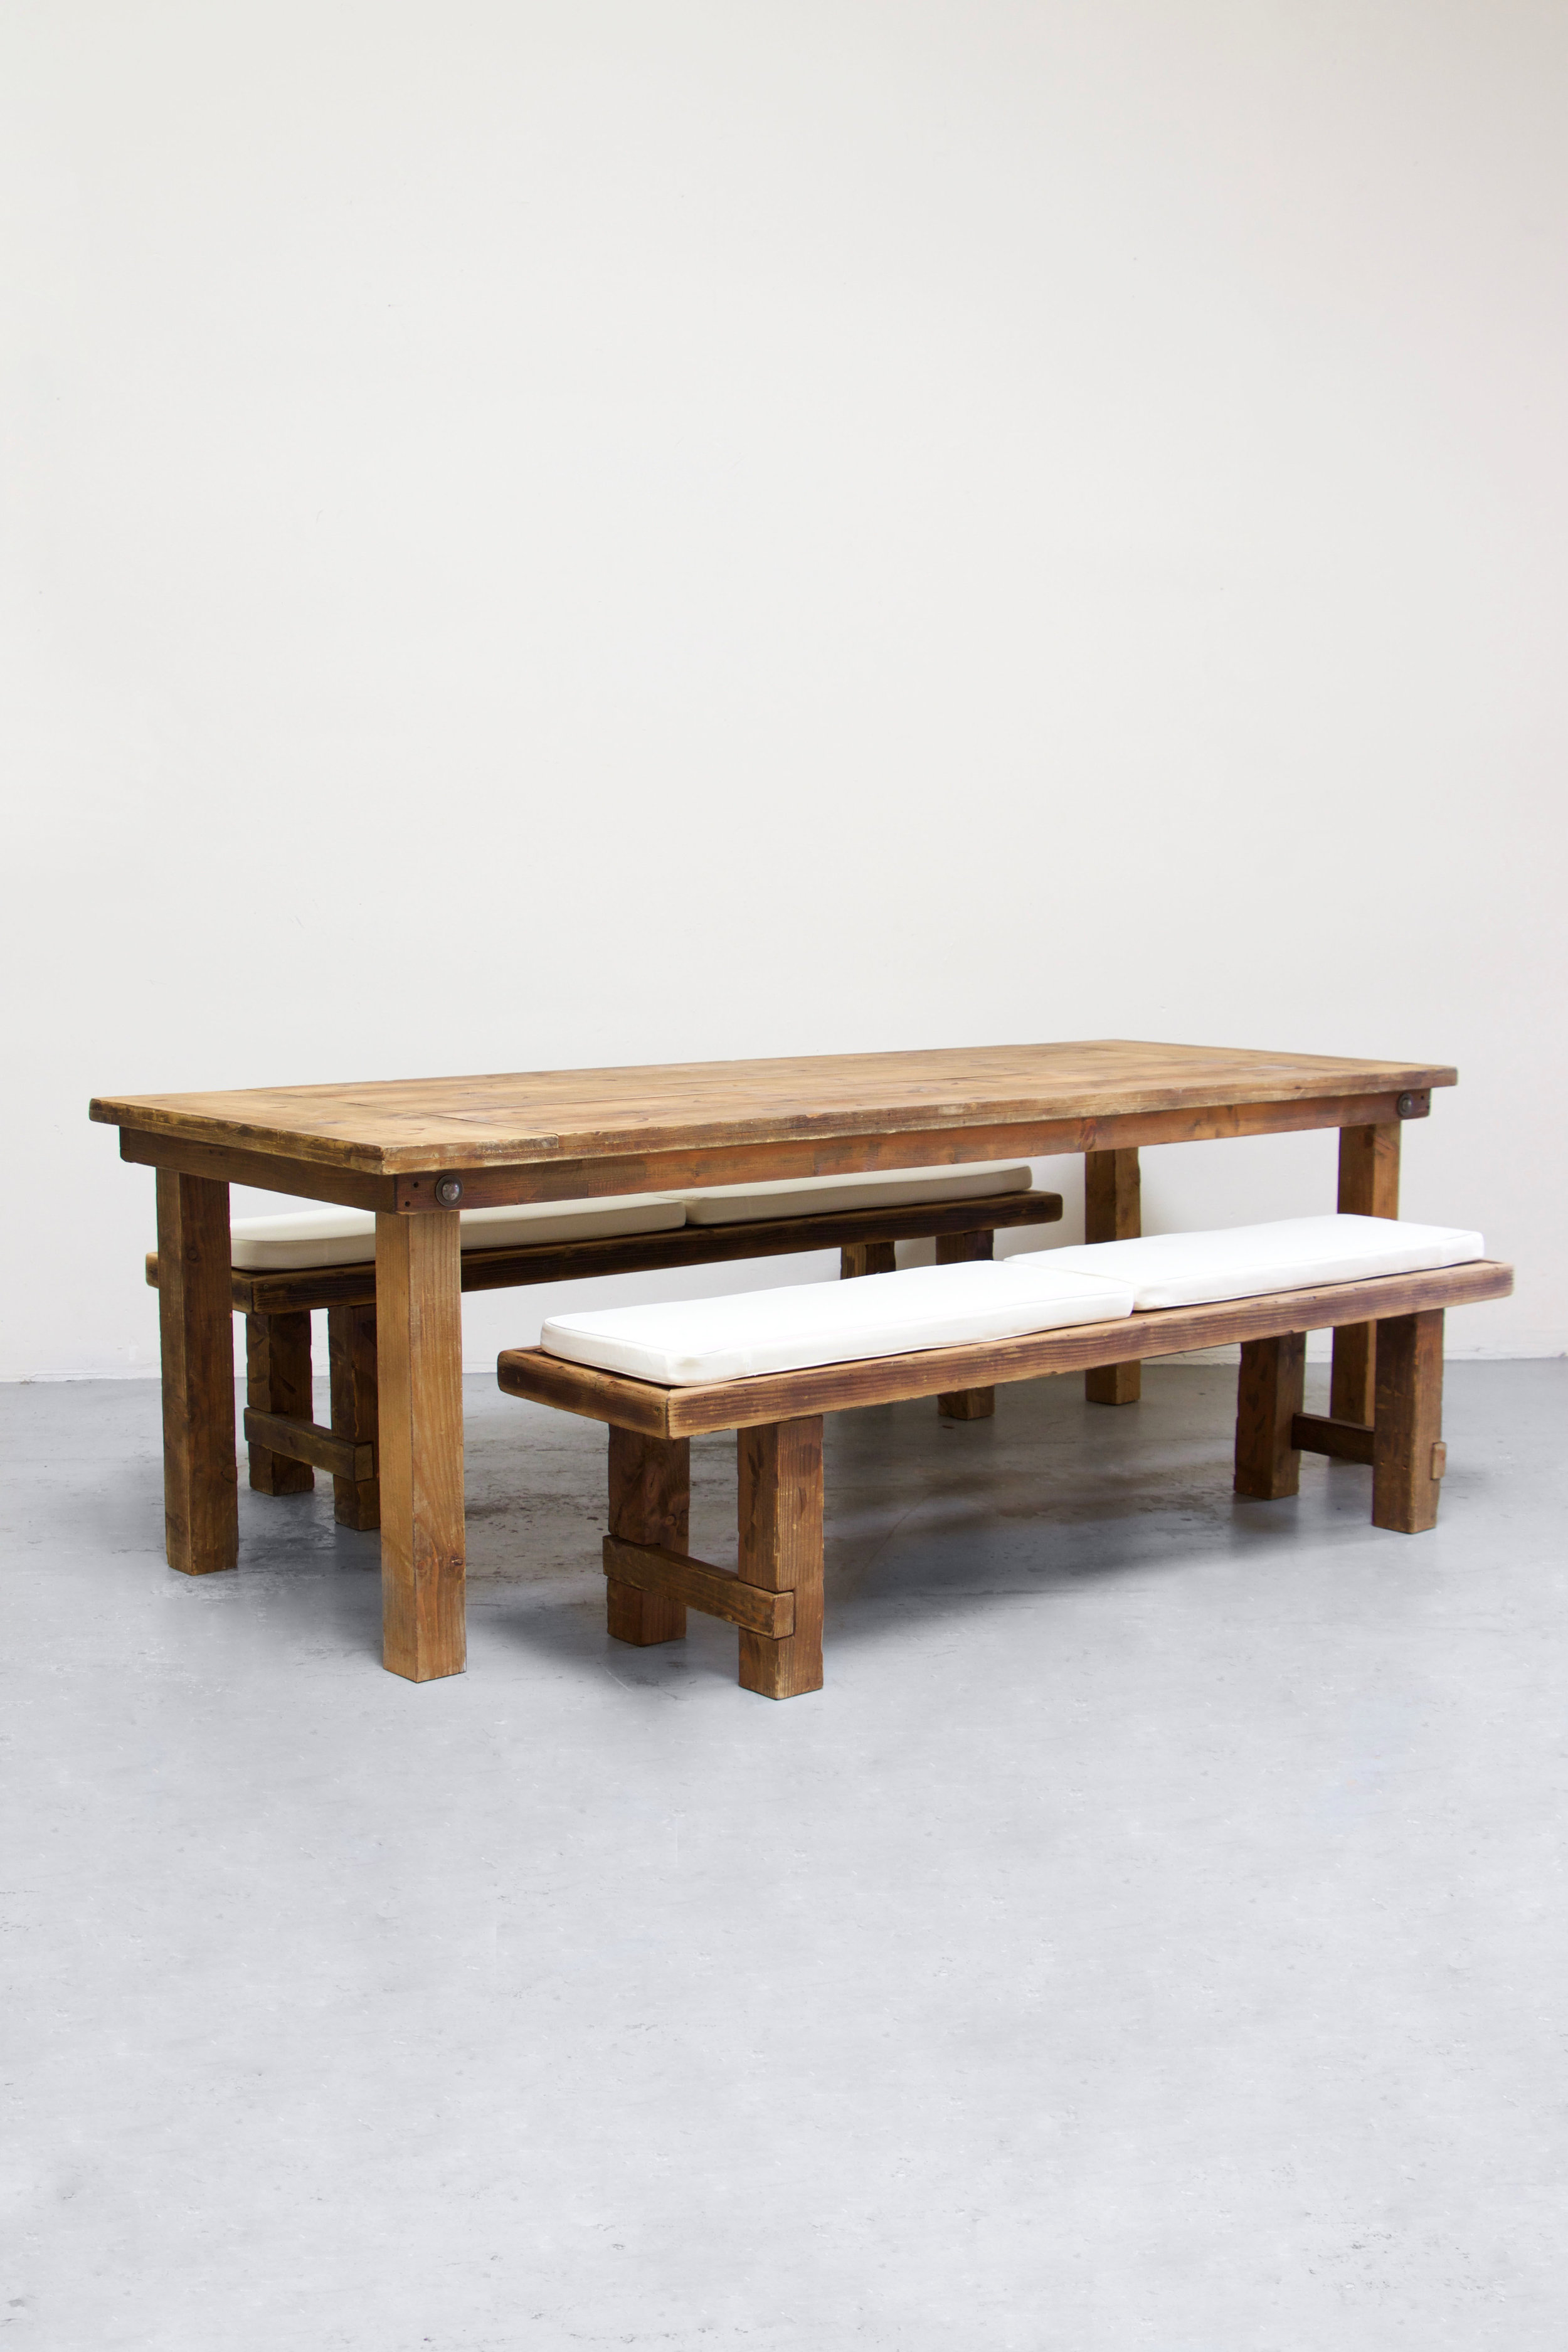 $145 1 Honey Brown Farm Table w/ 2 Long Benches